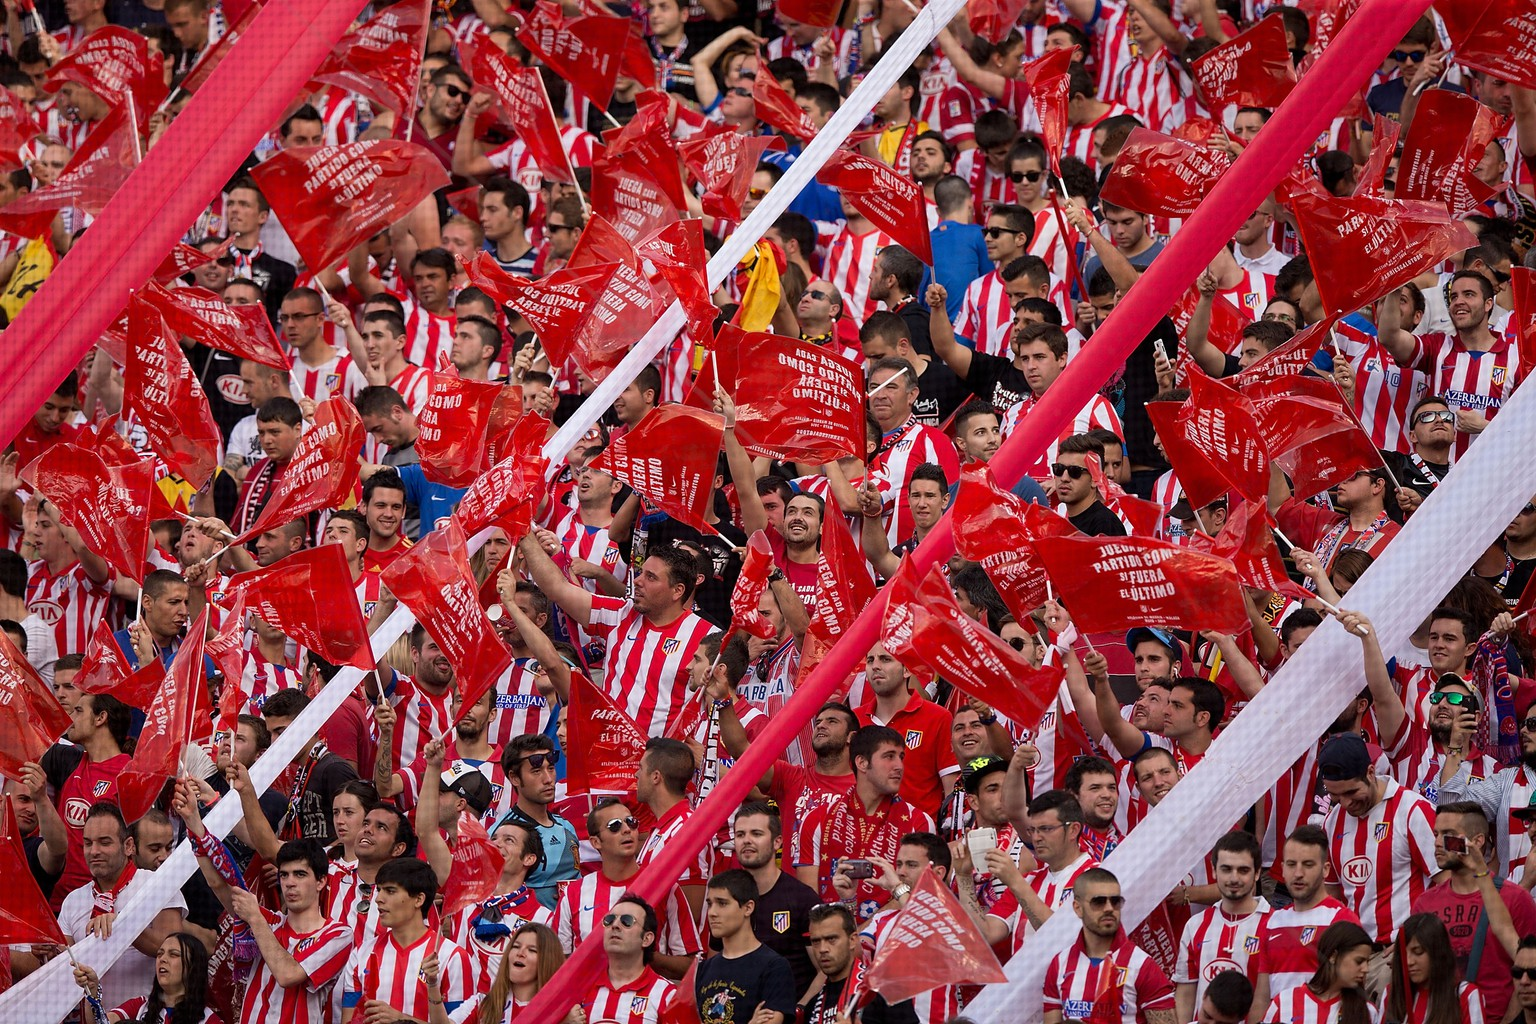 MADRID, SPAIN - MAY 11:  Atletico de Madrid fans wave red plastic flags supporting their team prior to start the La Liga match between Club Atletico de Madrid and Malaga CF at Vicente Calderon Stadium on May 11, 2014 in Madrid, Spain.  (Photo by Gonzalo Arroyo Moreno/Getty Images)